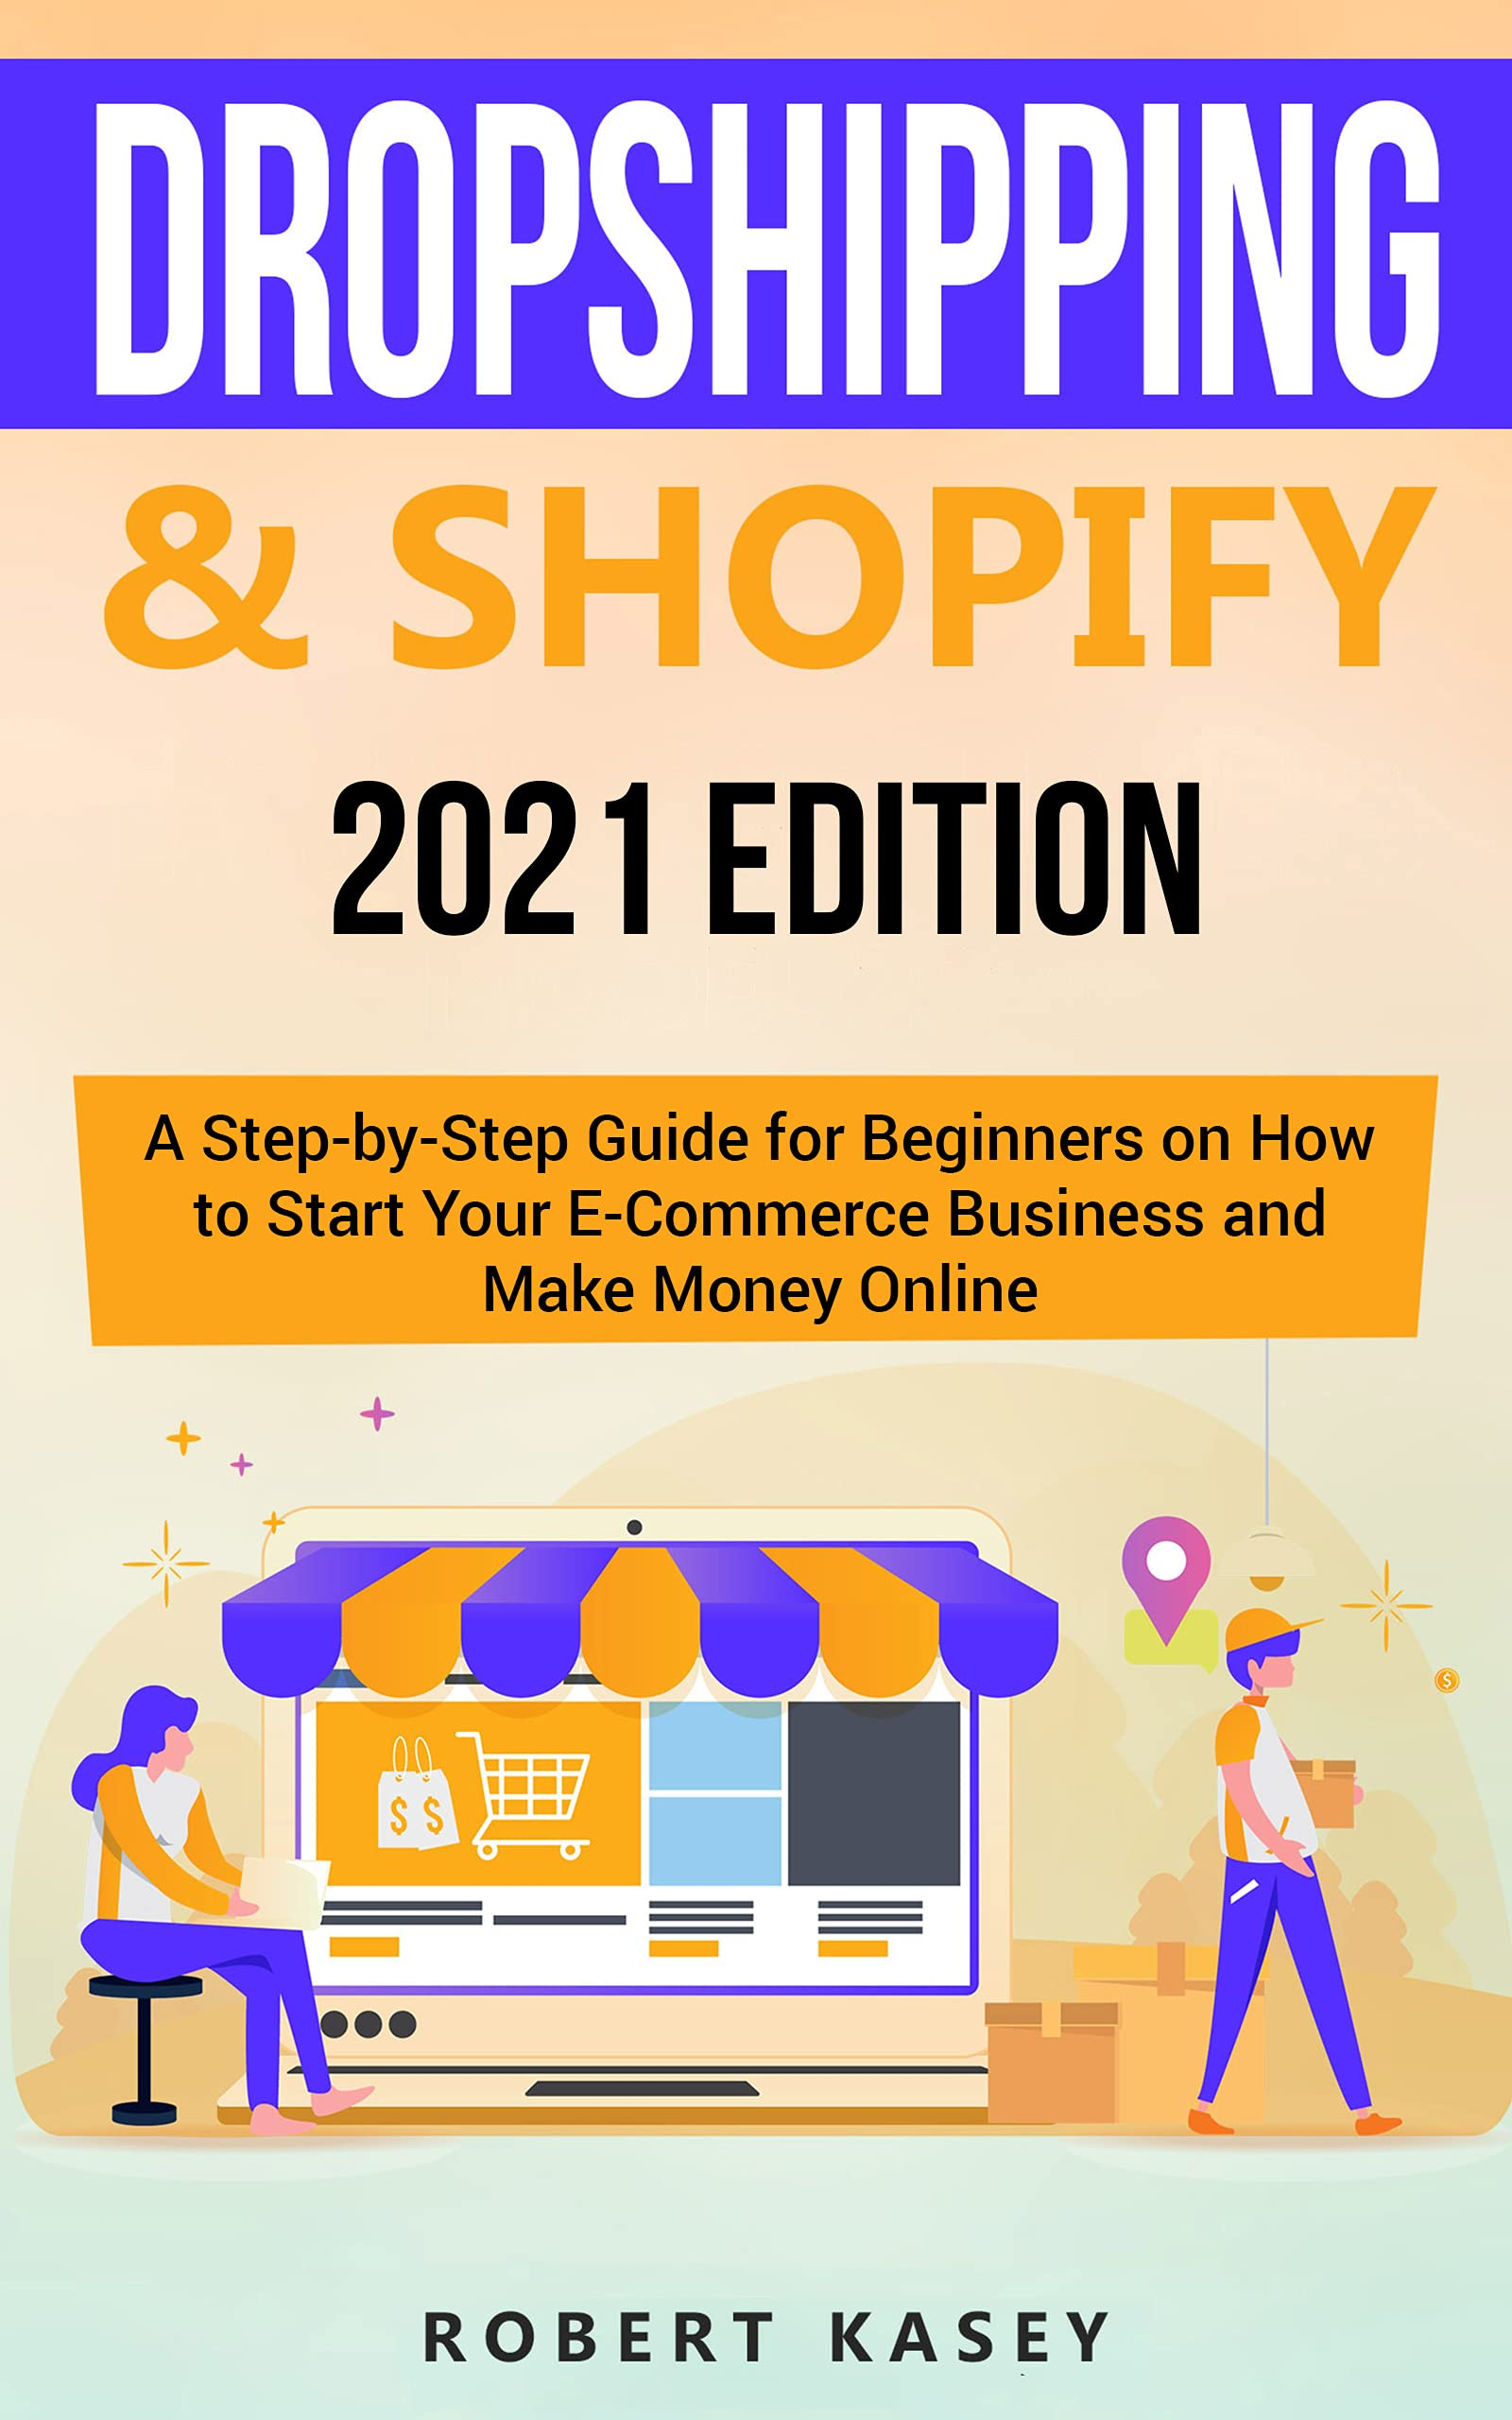 Dropshipping & Shopify: 2021 Edition - A Step-by-Step Guide for Beginners on How to Start Your E-Commerce Business and Make Money Online (Best Financial Freedom Books & Audiobooks)